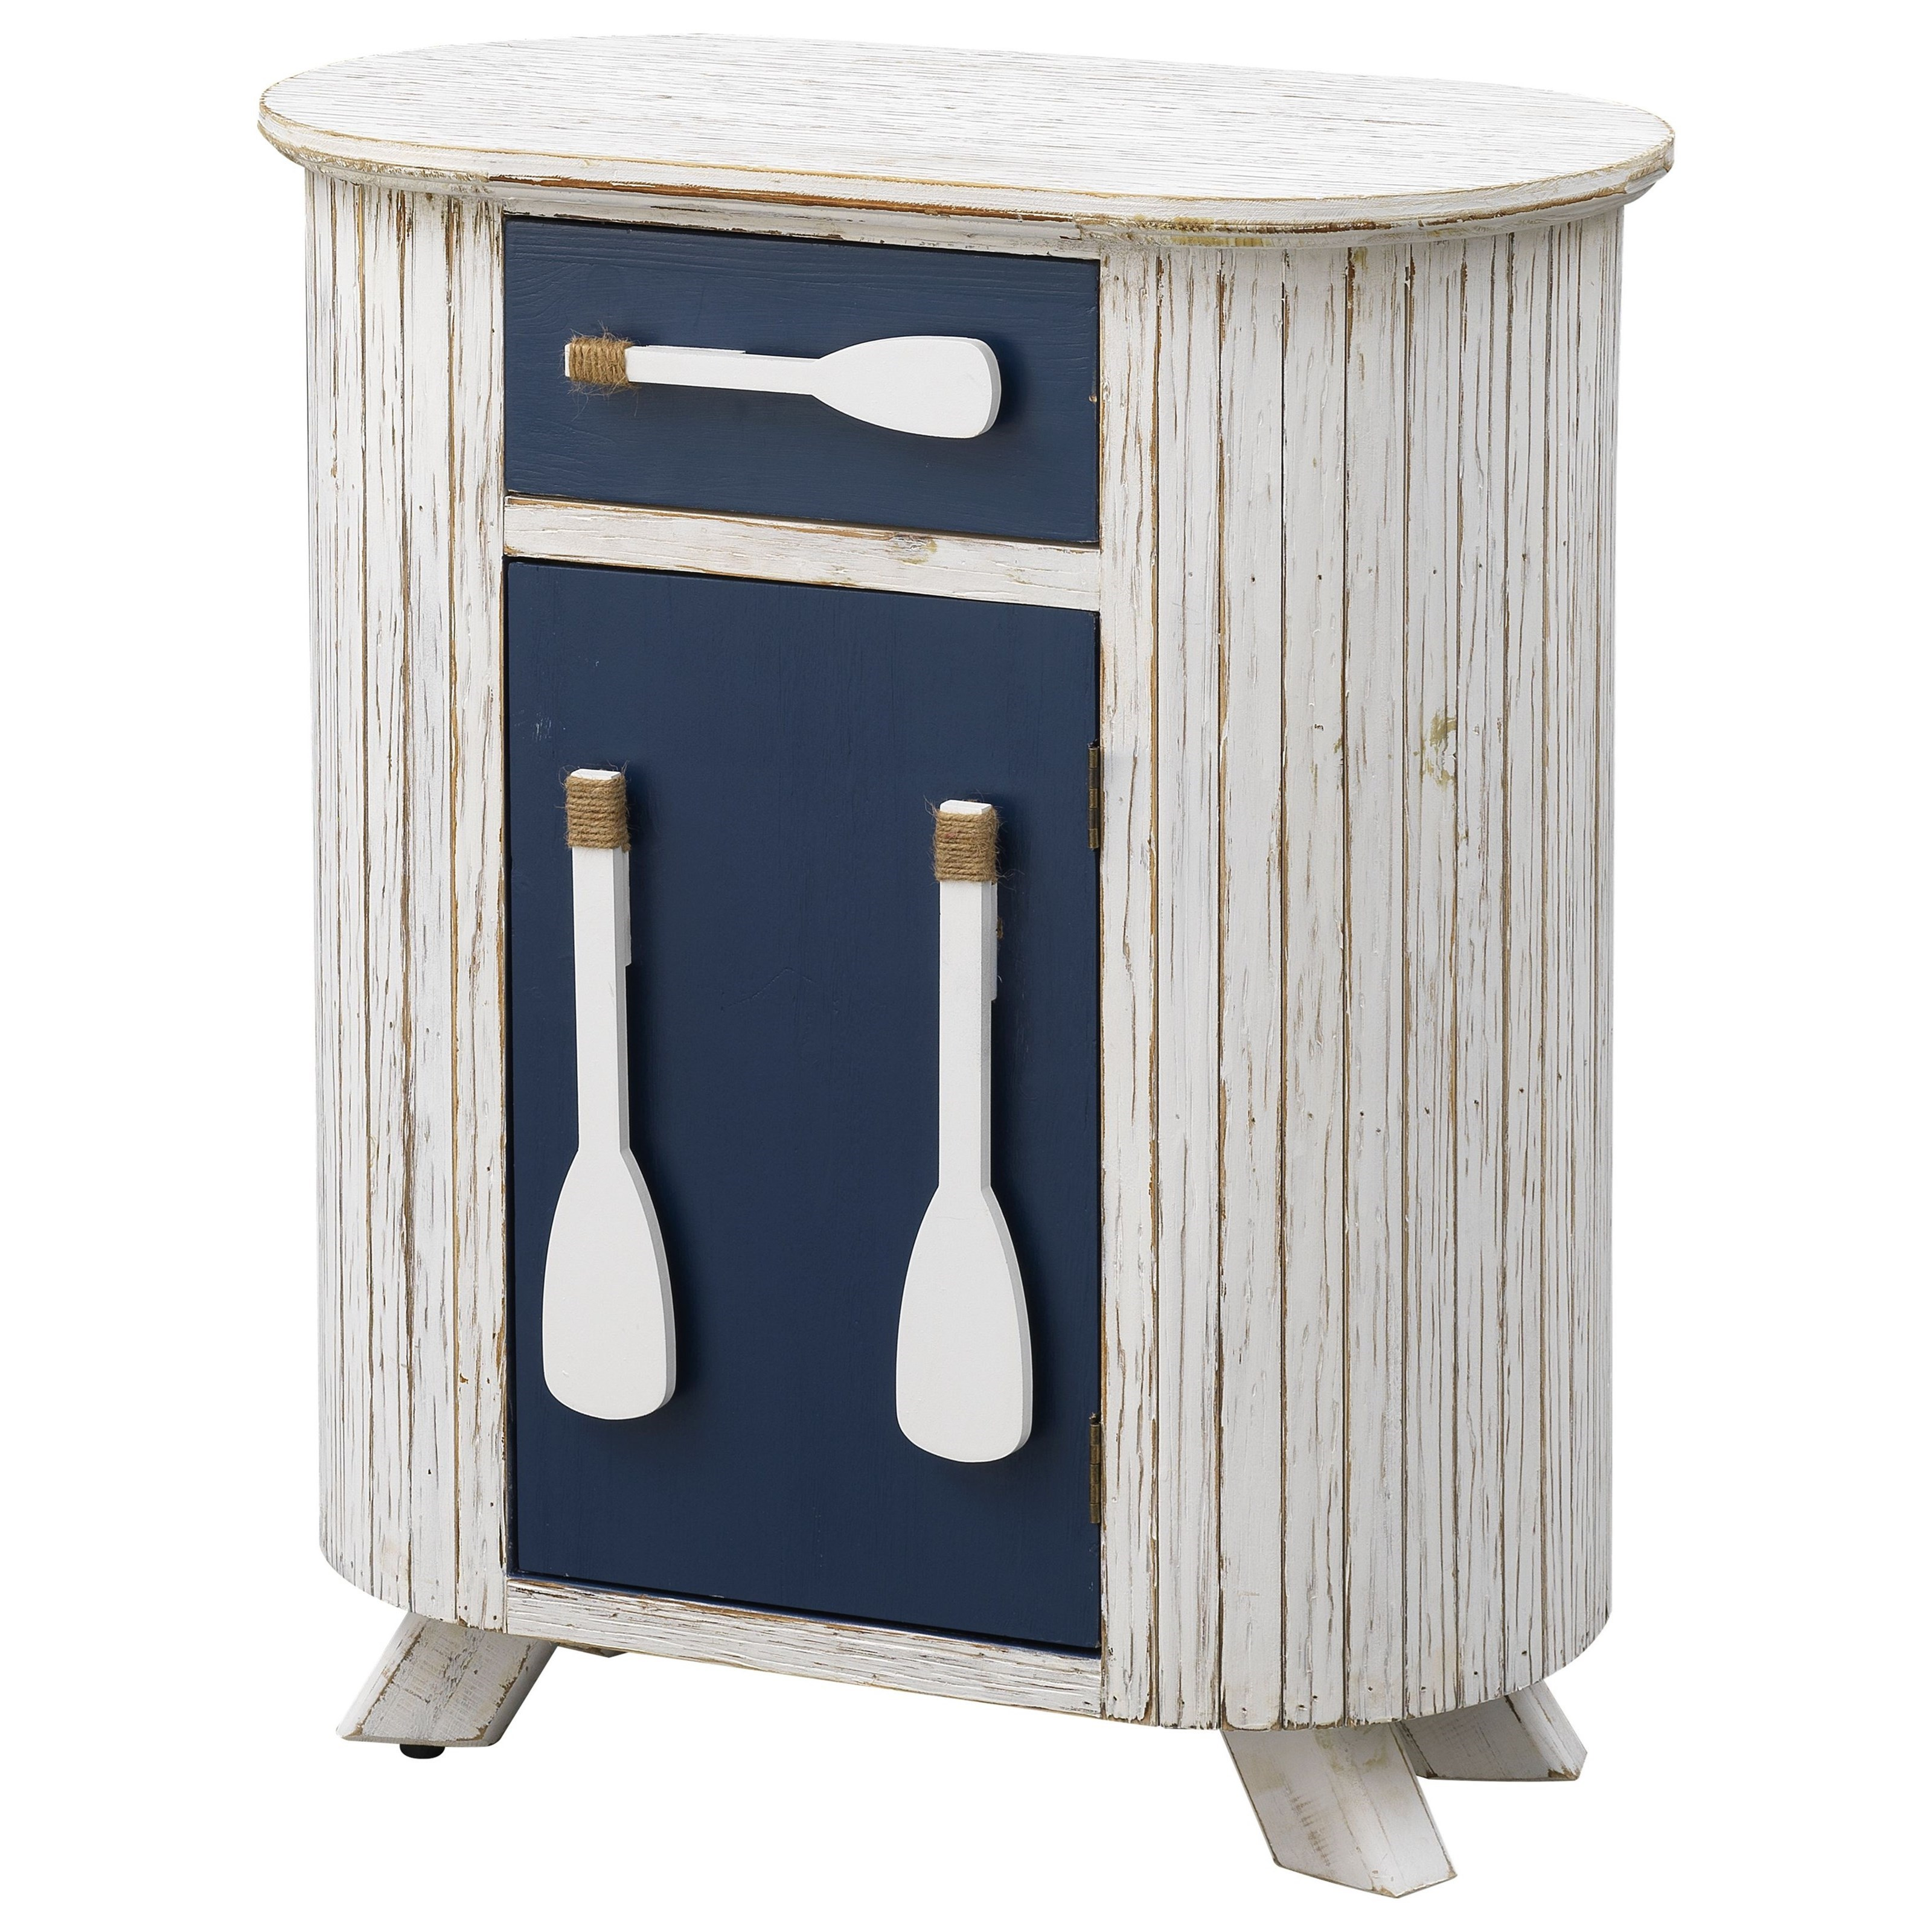 Pieces in Paradise 1-Drawer, 1-Door Accent Cabinet by Coast to Coast Imports at Baer's Furniture